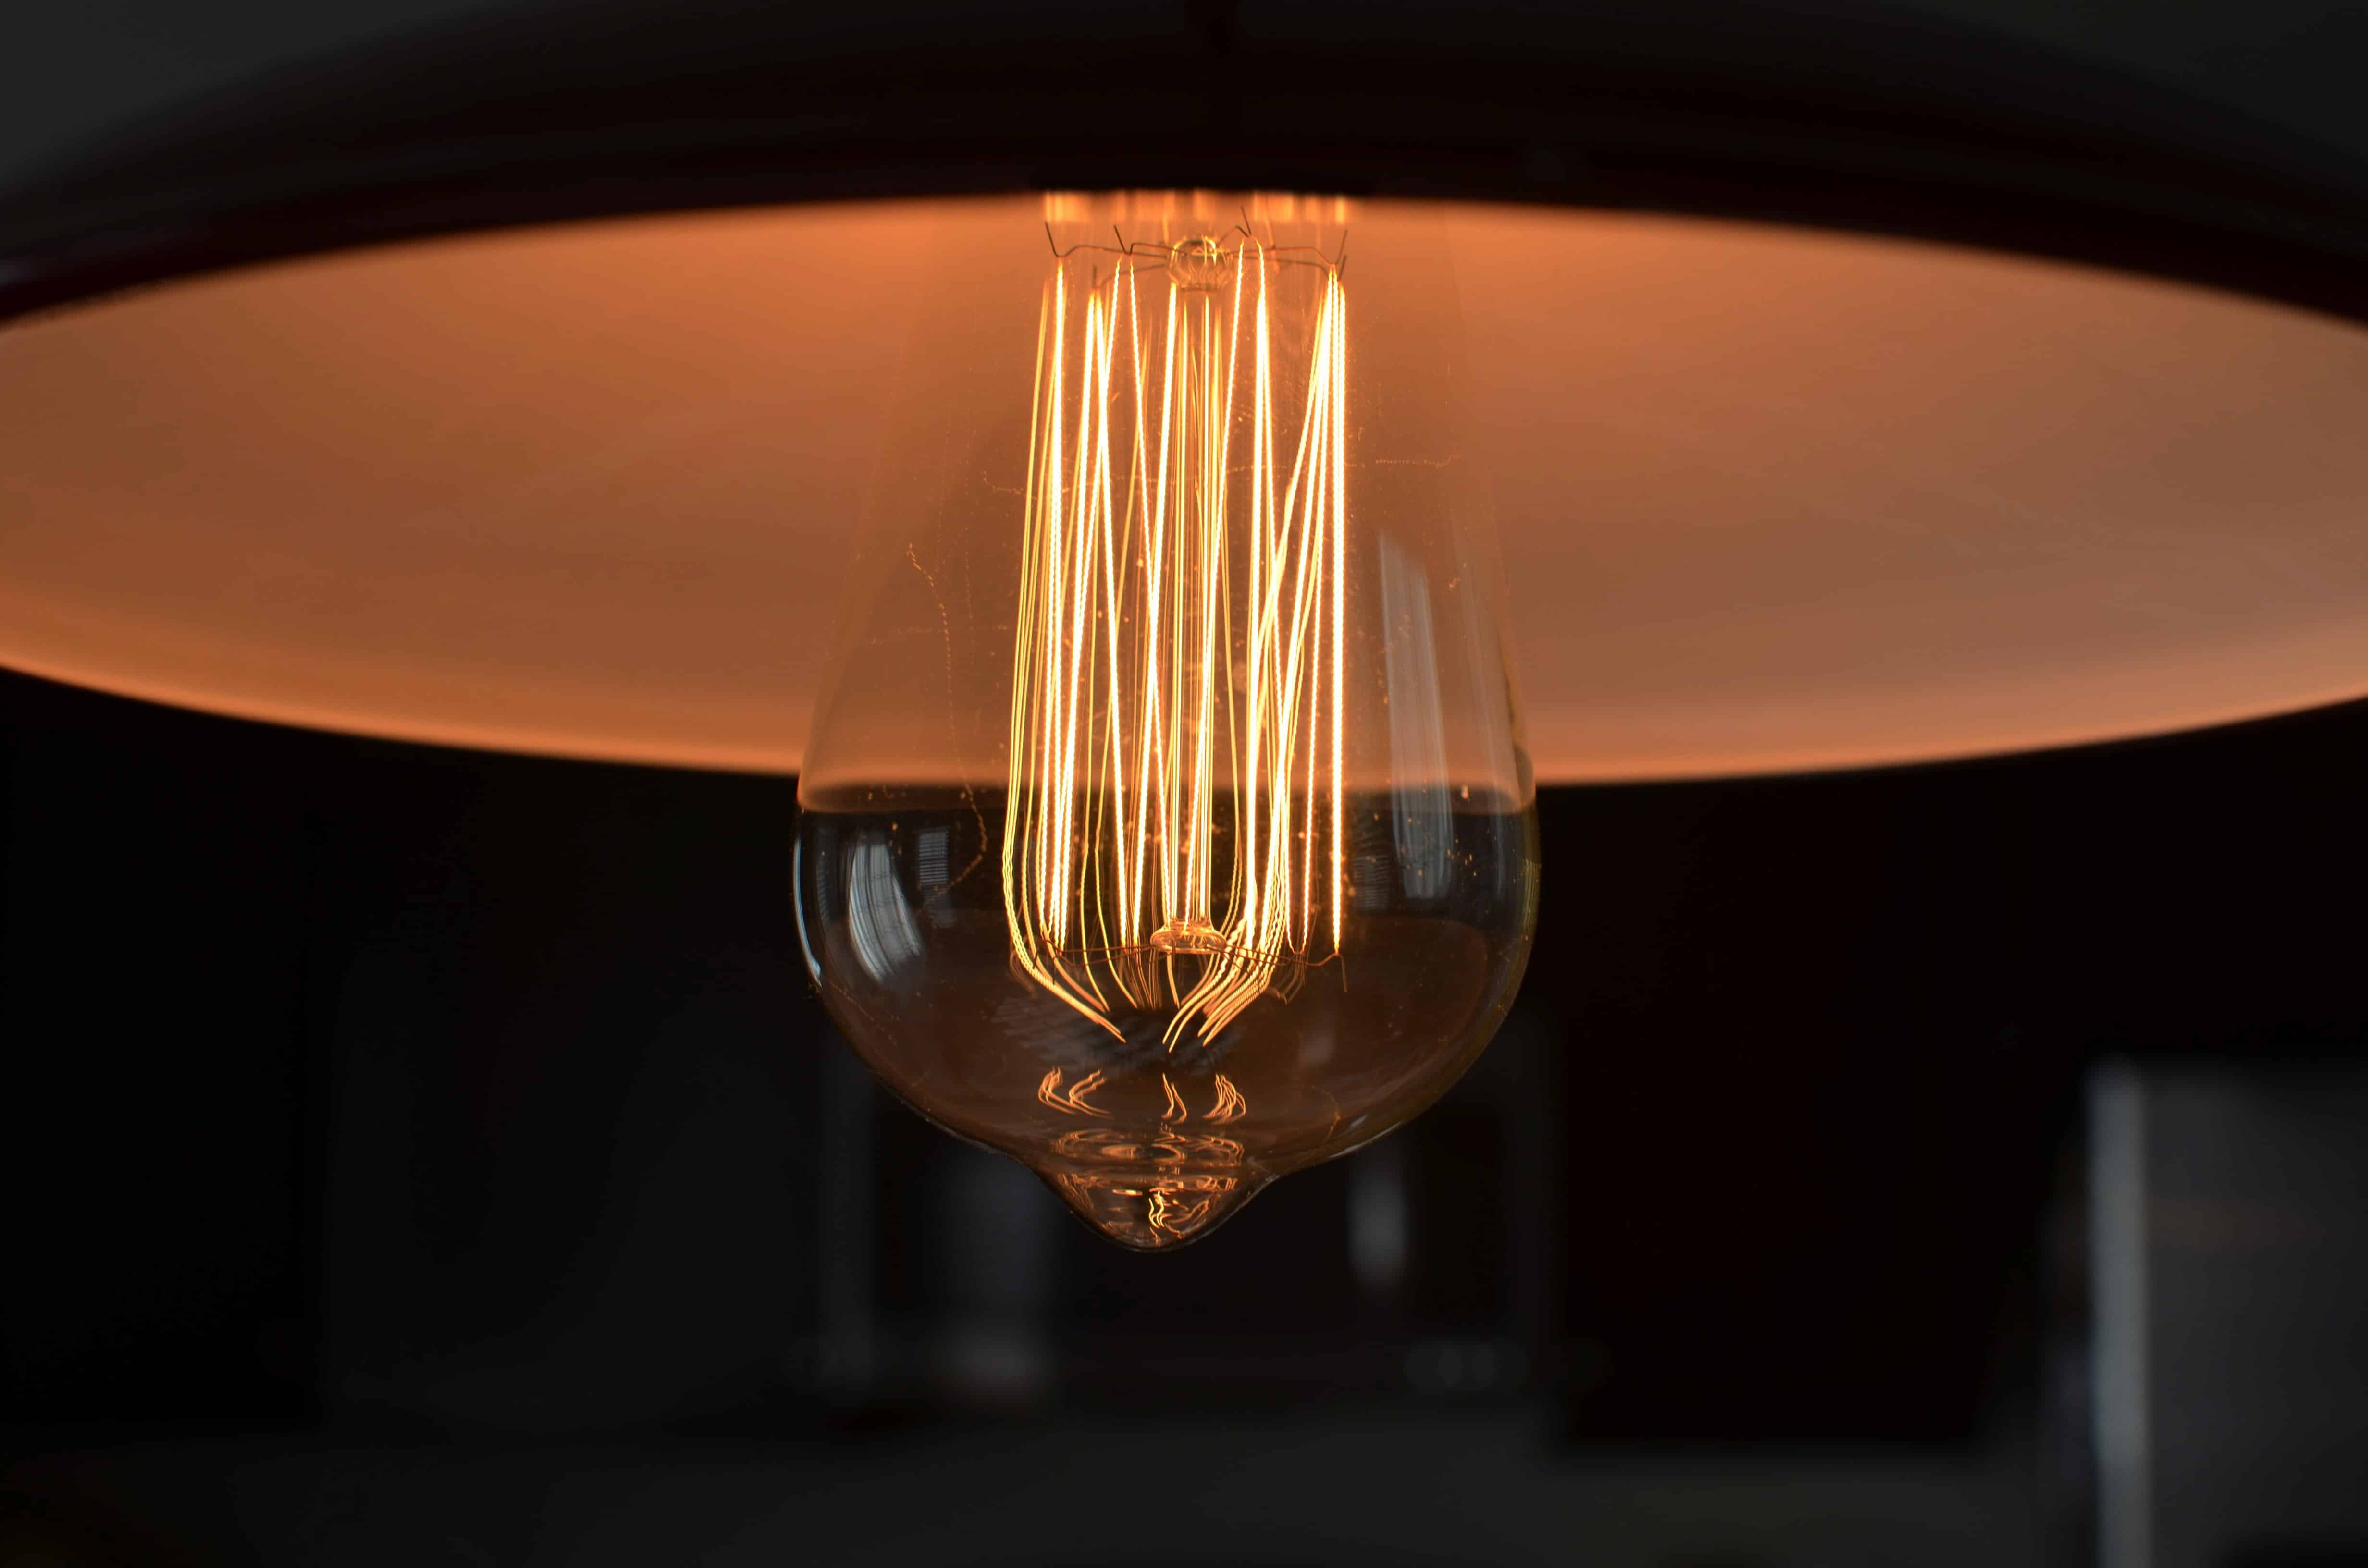 Electrician Services in Hailsham